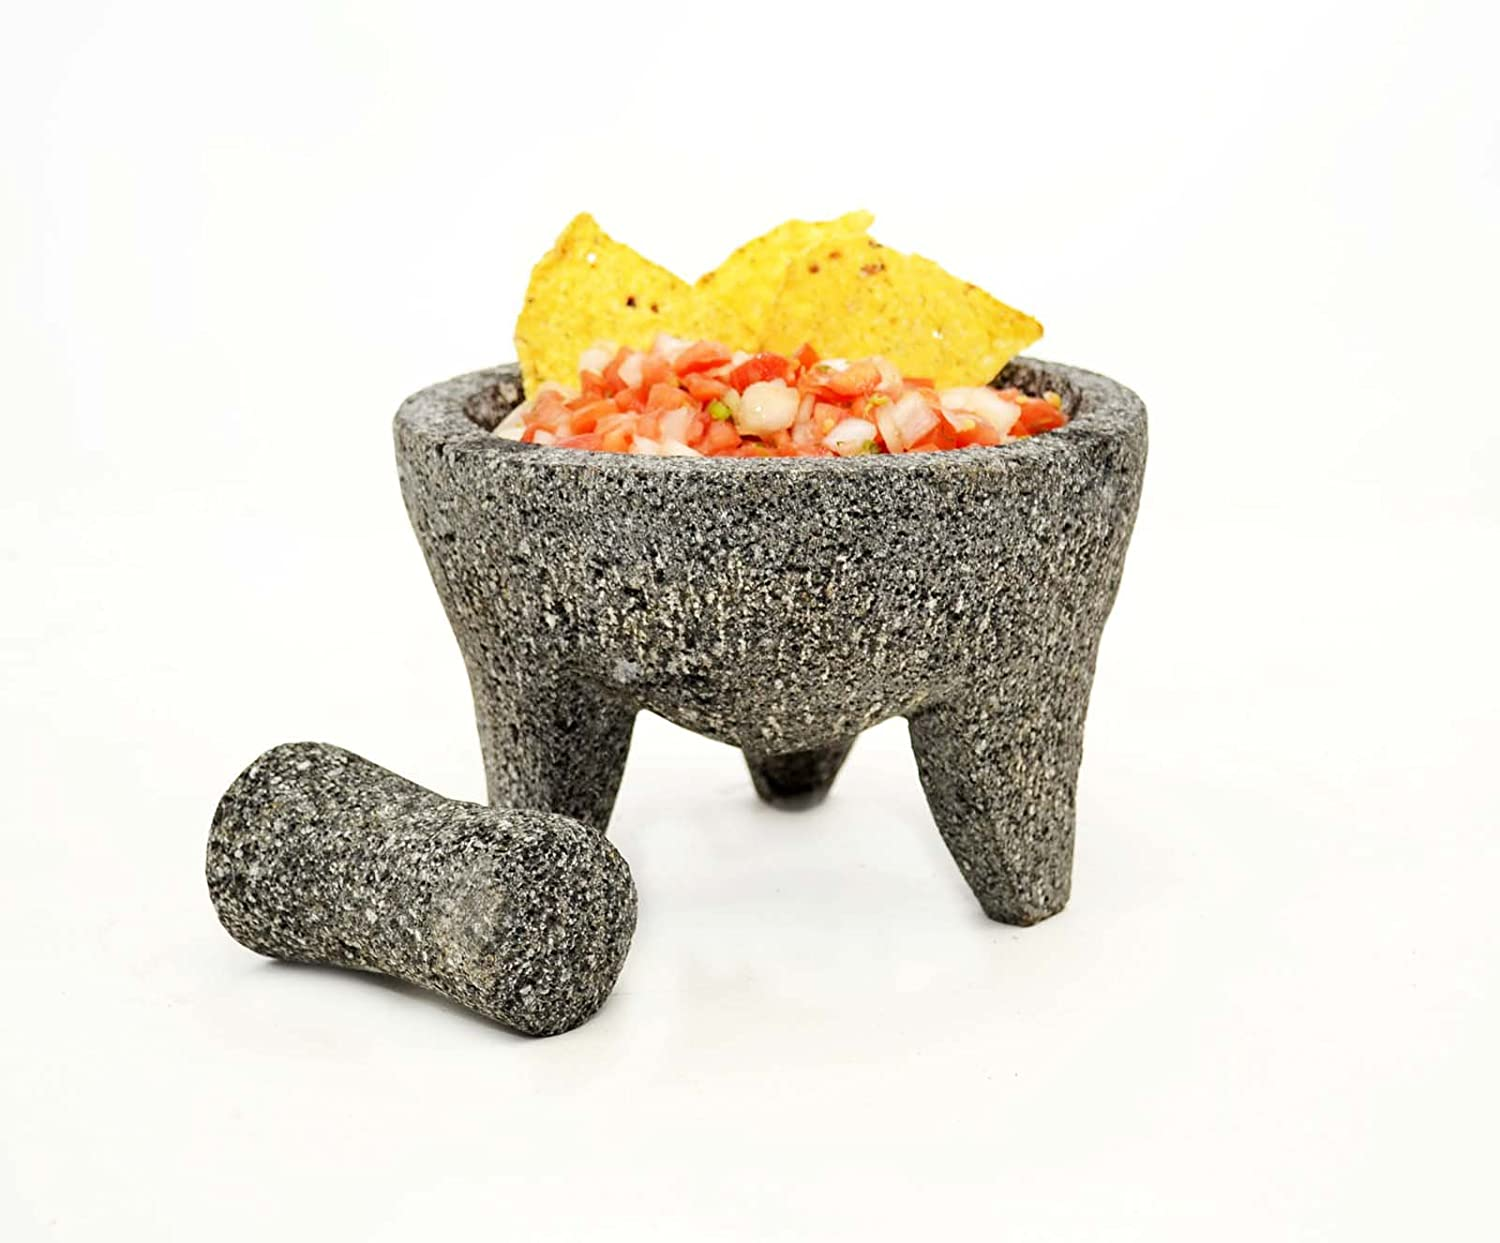 Amazon.com: Laredo Mortar and Pestle Molcajete-6.25 Inches in Diameter x 4 Inches High: Kitchen & Dining